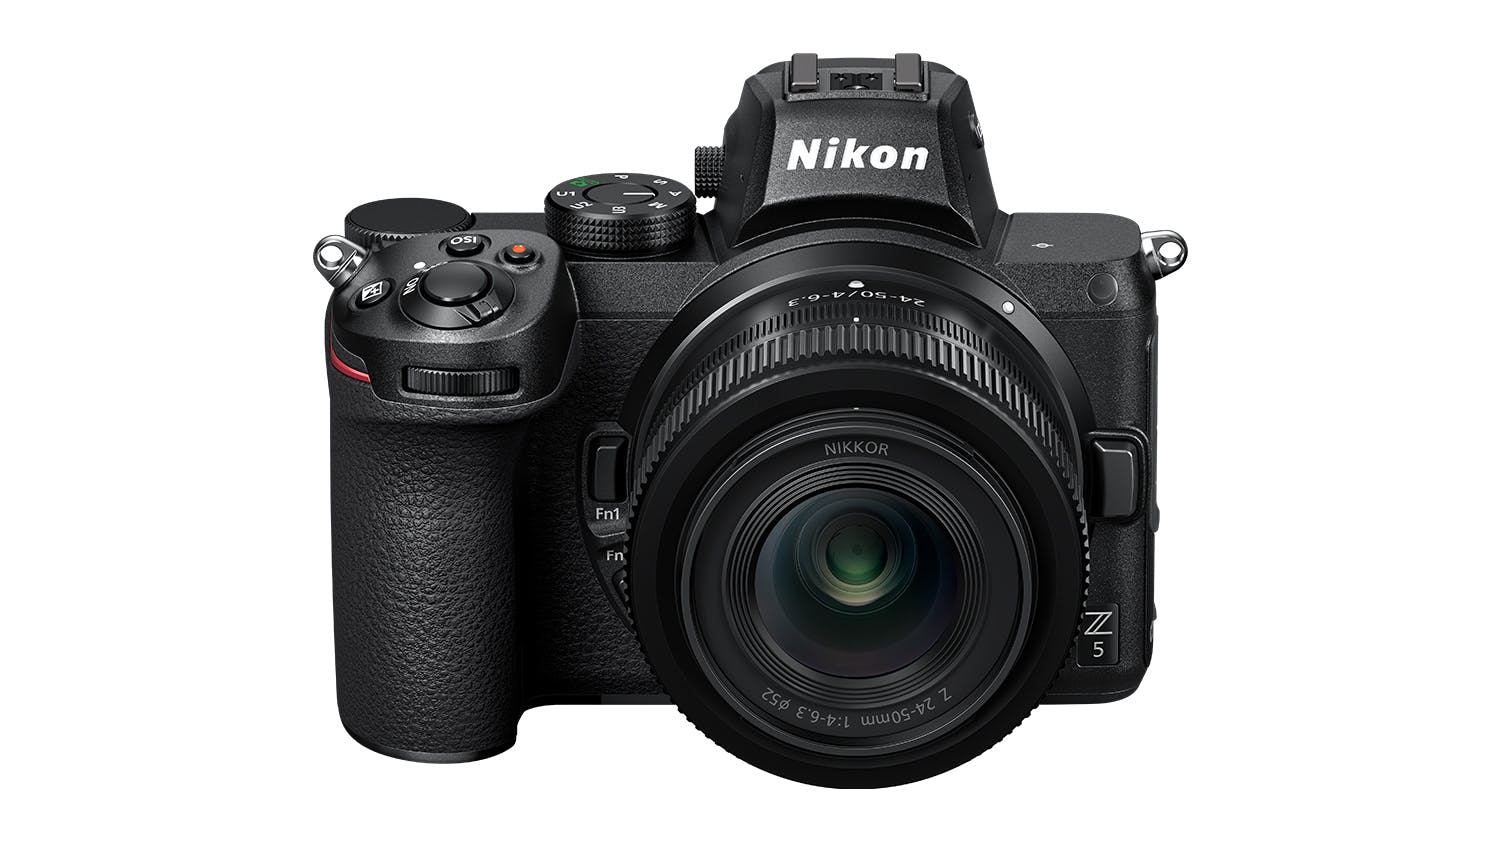 Nikon Z5 Mirrorless Camera with 24-50mm Lens